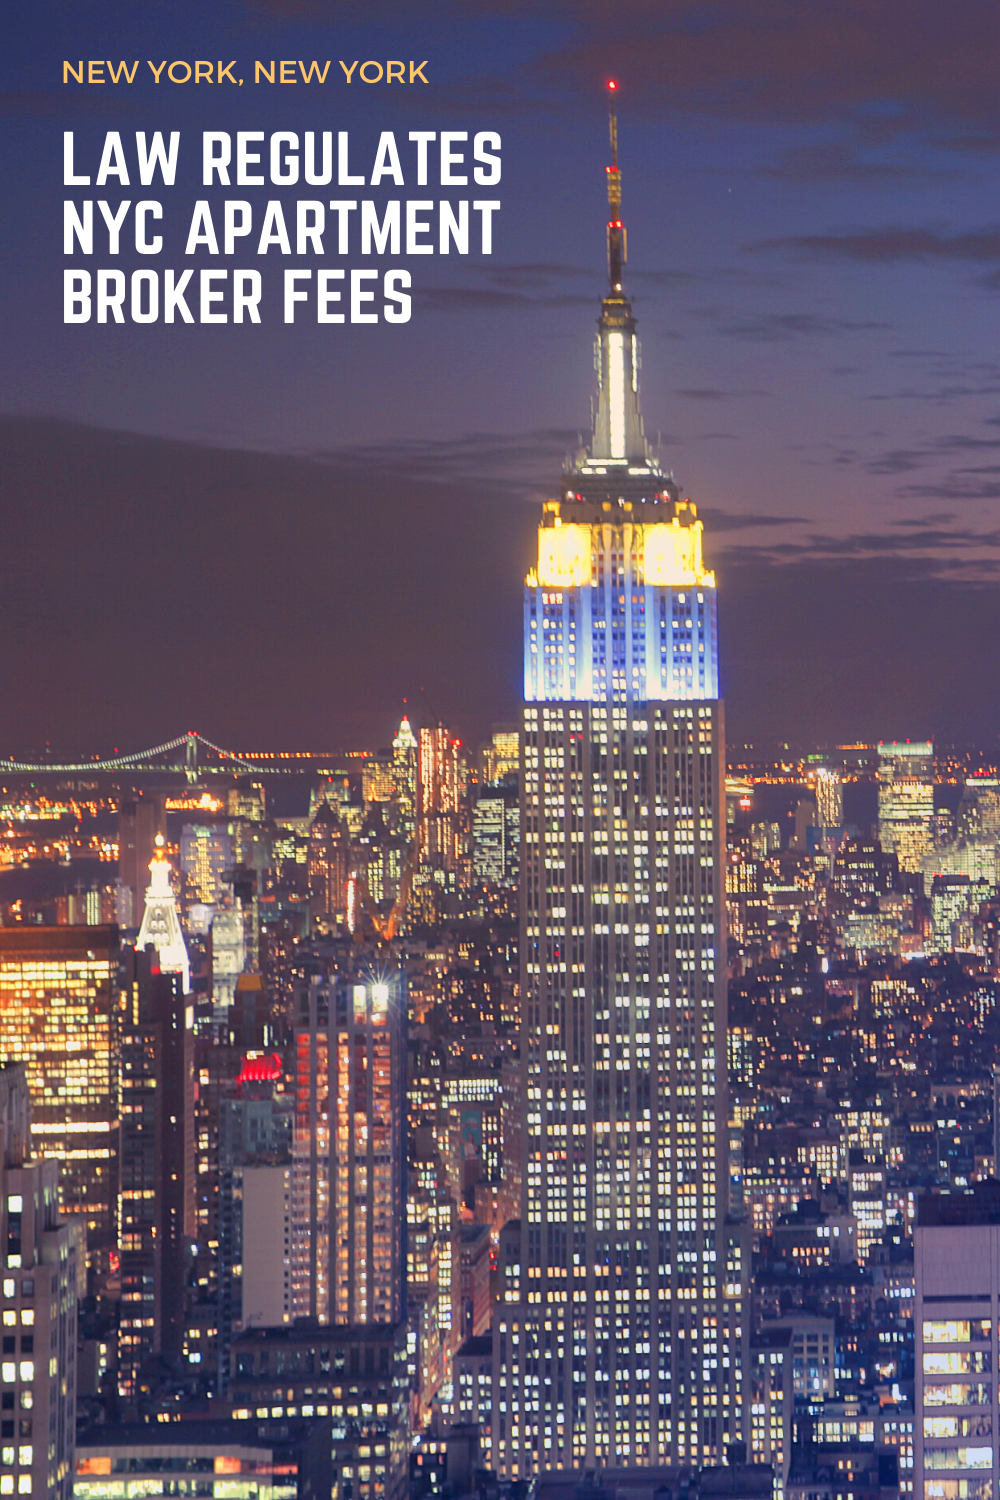 Law regulates NYC apartment broker fees